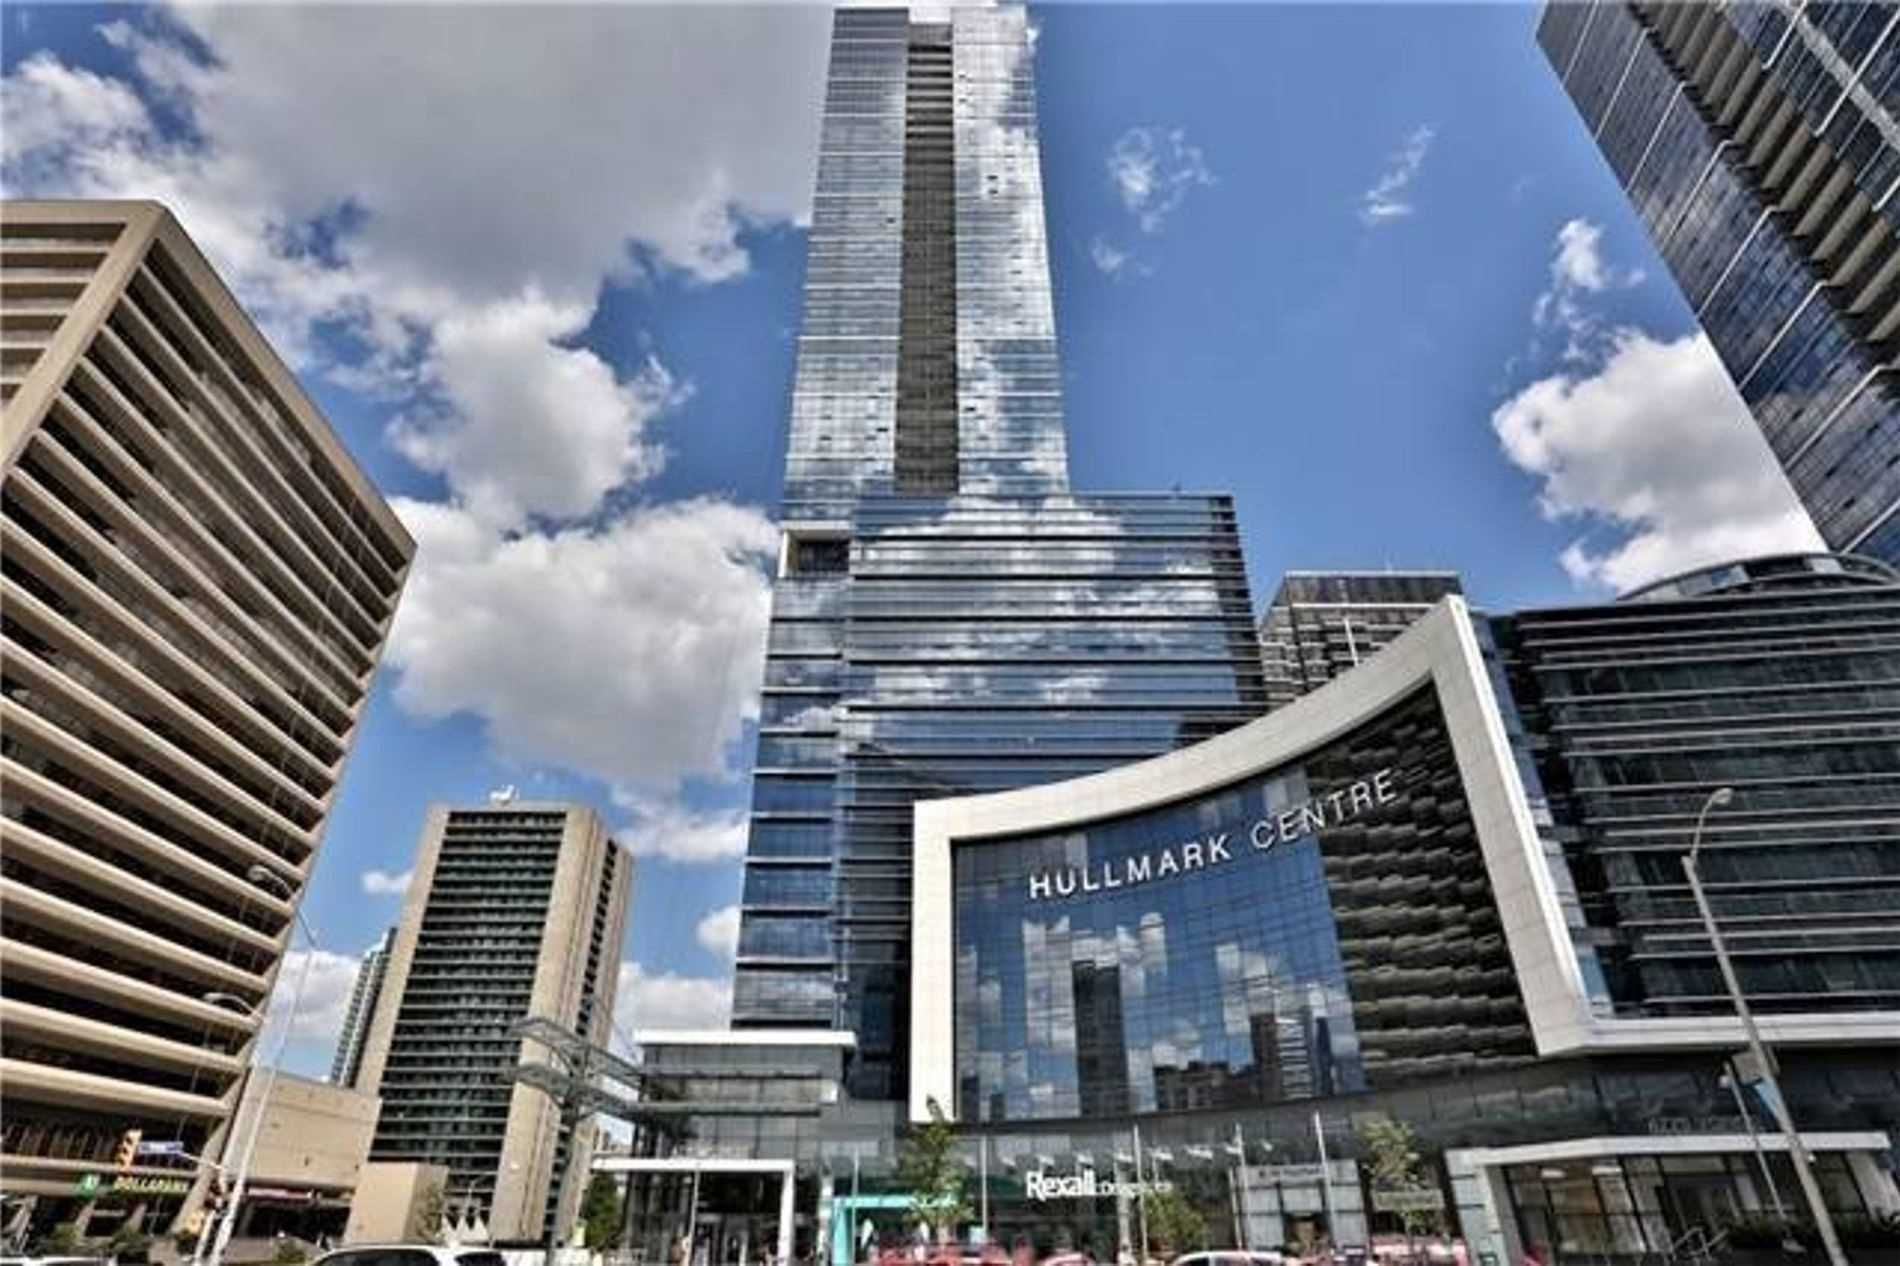 2 Anndale Dr, unit 605 for sale in Toronto - image #1